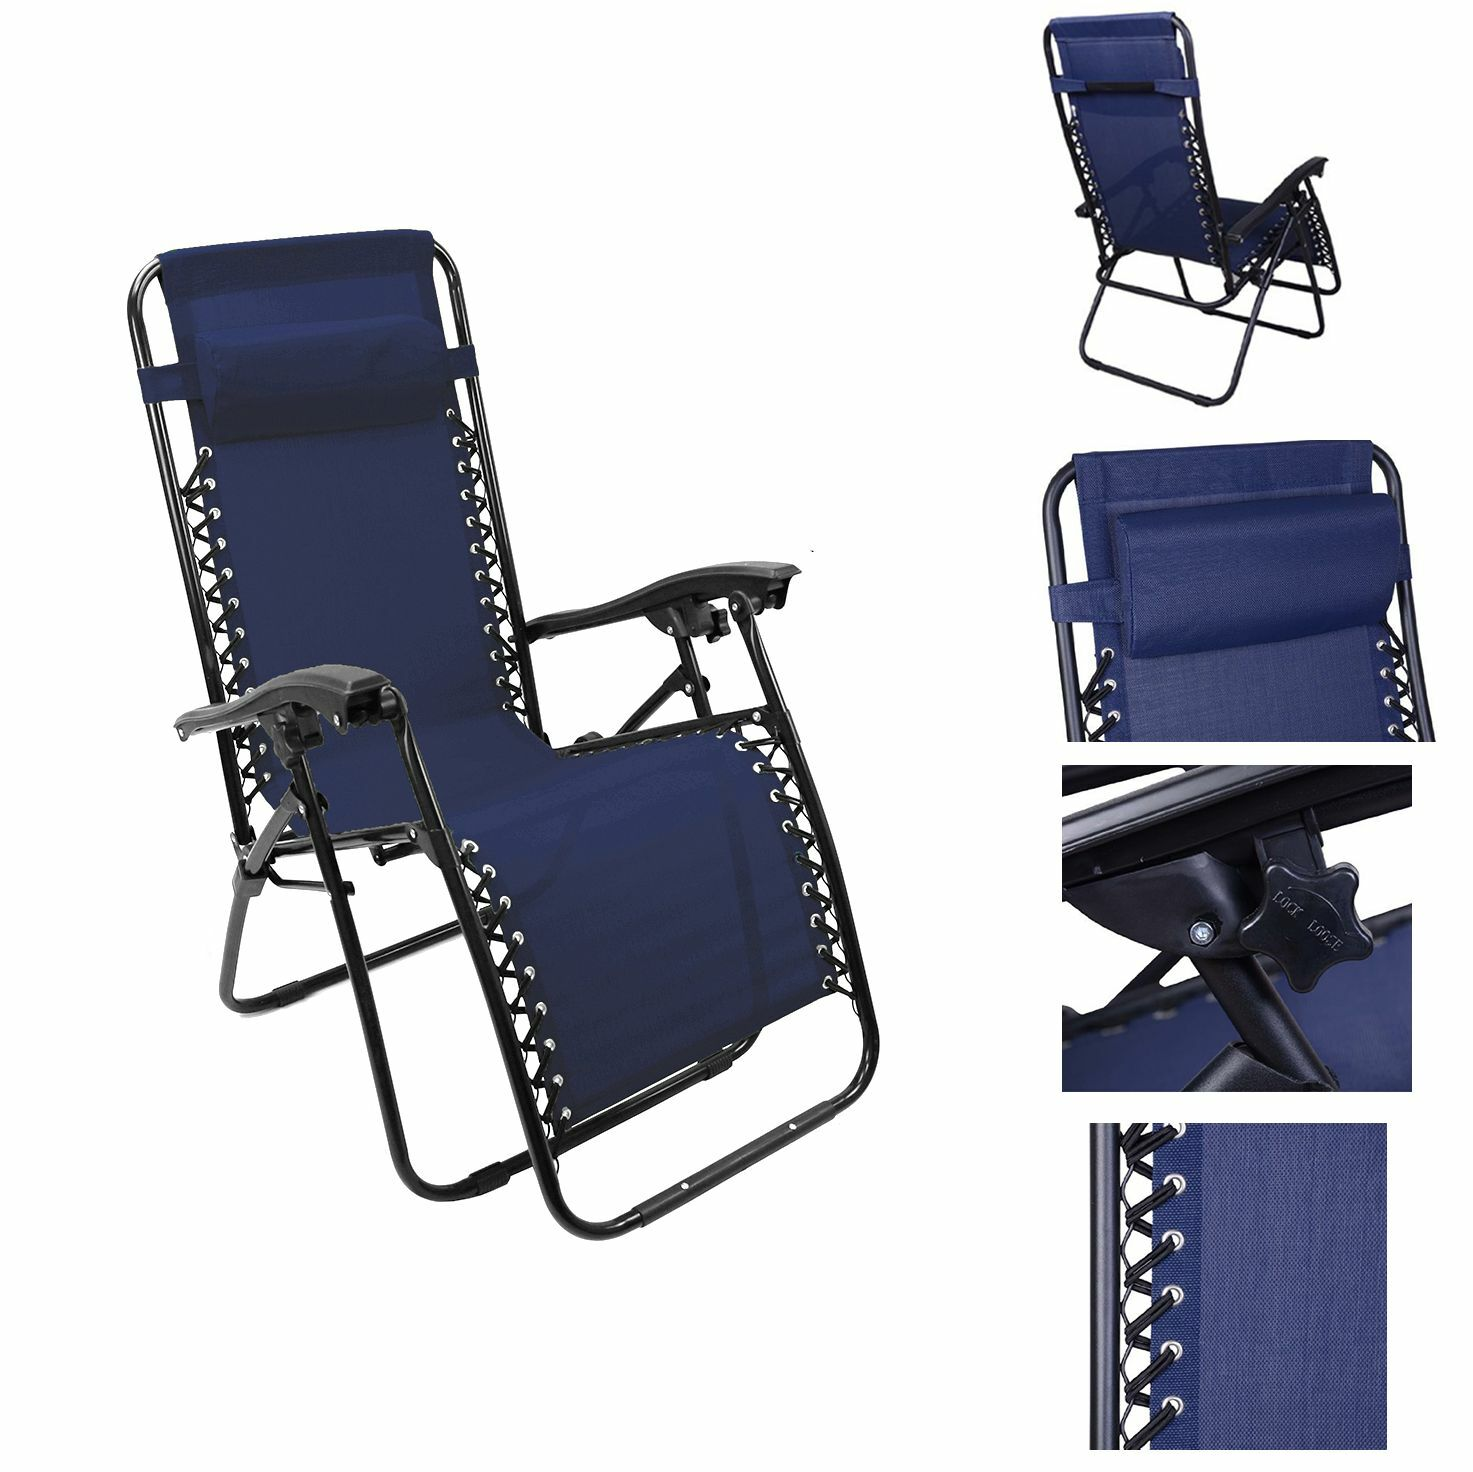 Folding Lounge Beach Chair Lounge Chair Recliner Reclining Patio Pool Beach Outdoor